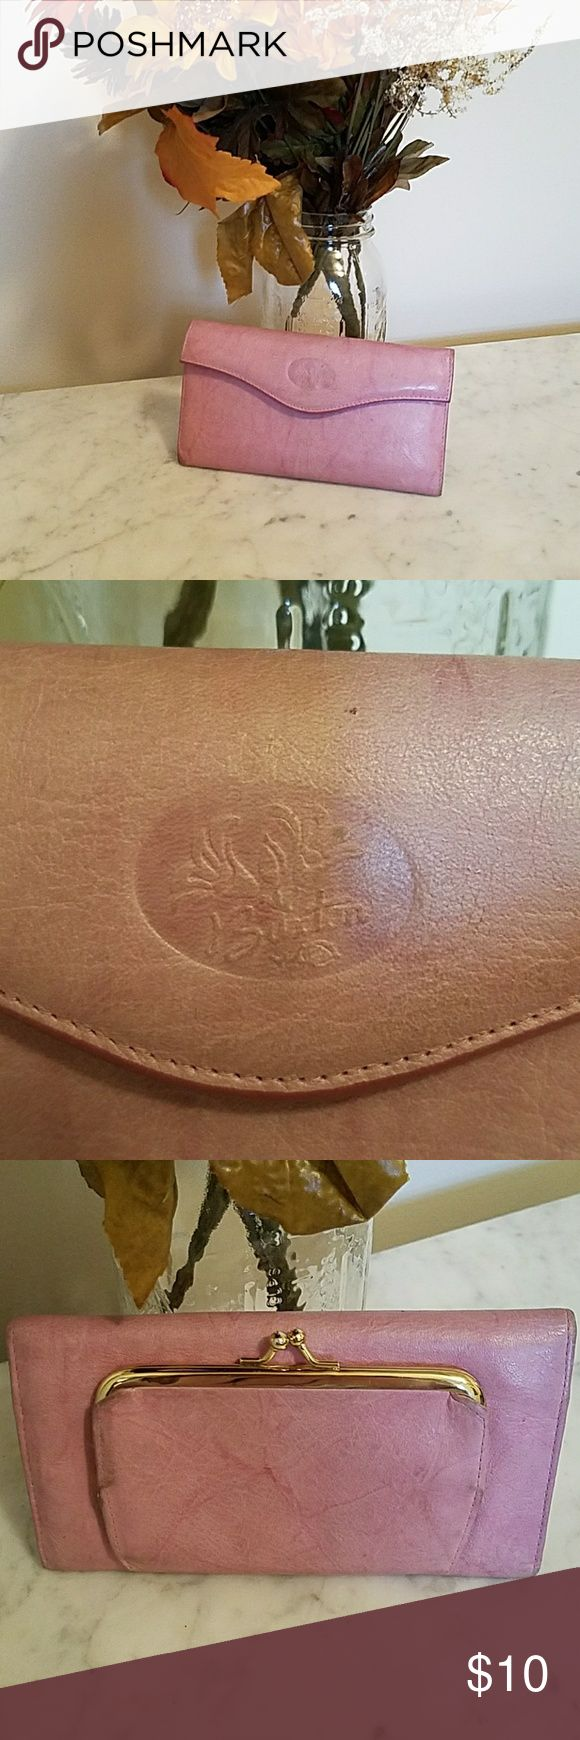 Buxton Wallet This Buxton wallet is made of cowhide. It has been well loved! Open to offers! Buxton Bags Wallets